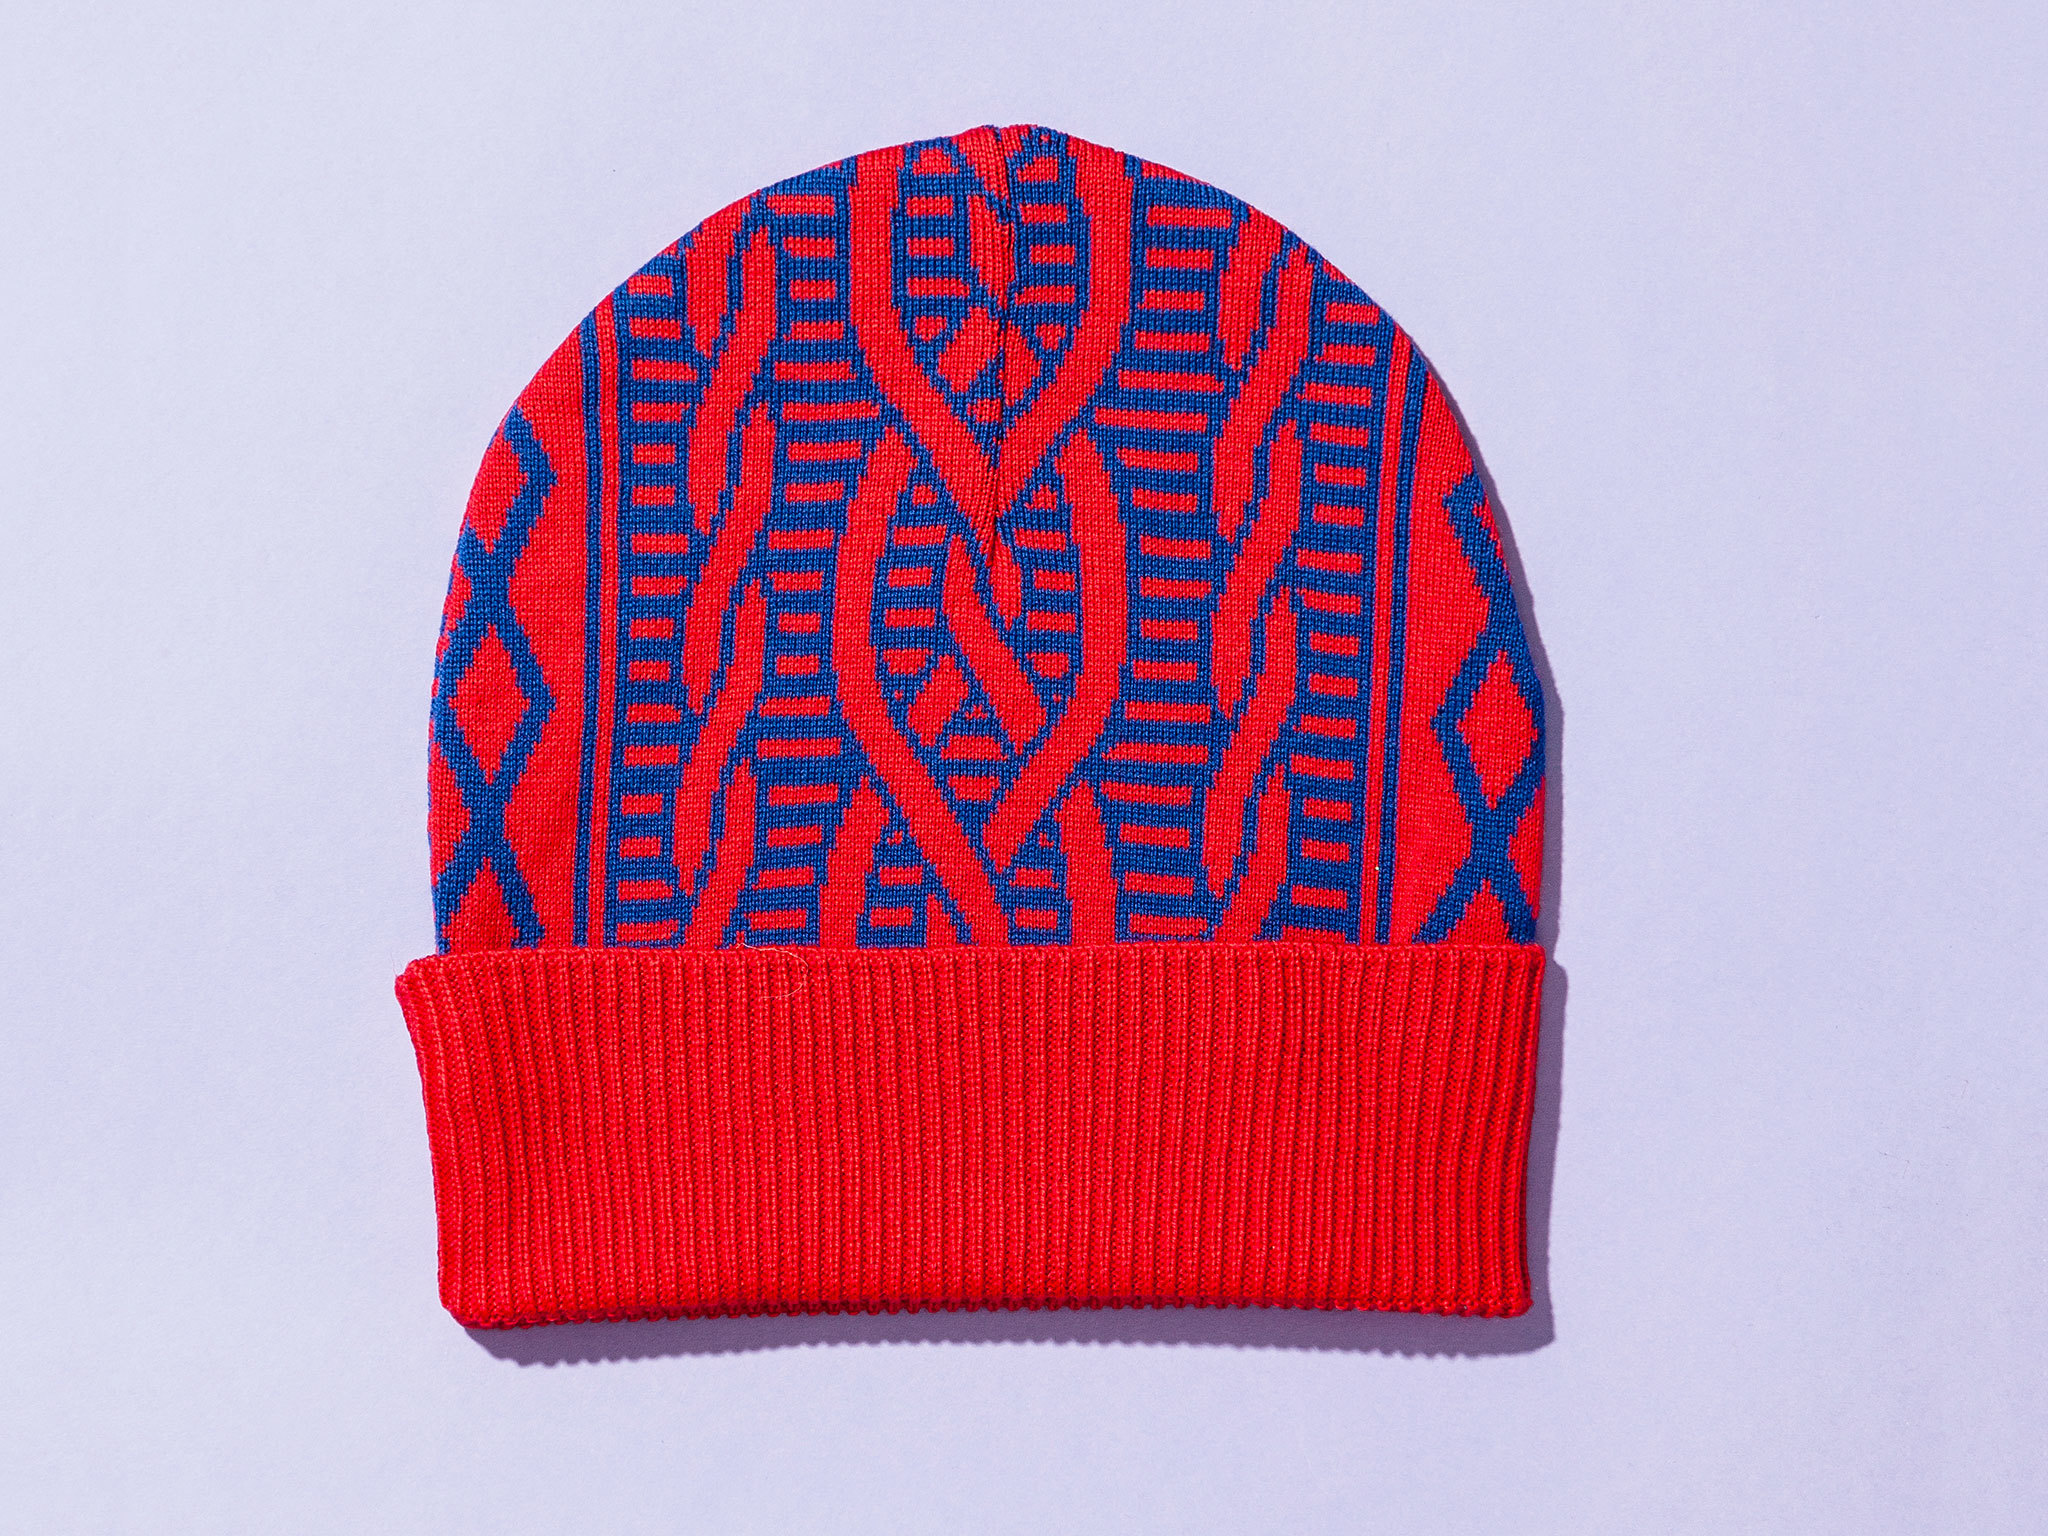 Beanie by UMD x Opening Ceremony